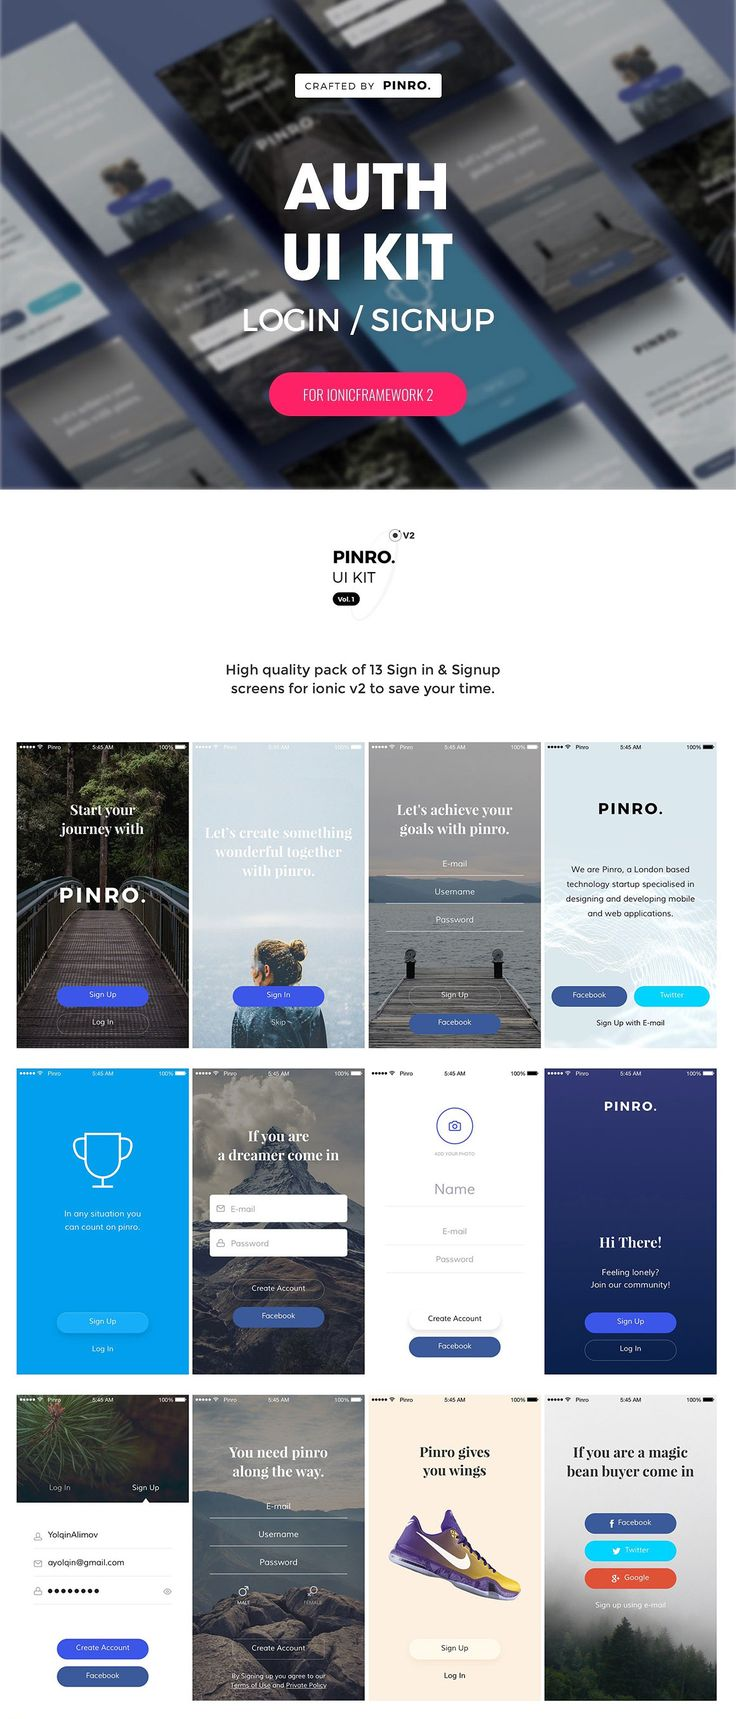 #Freebies : Auth #UI KIT is an original IONIC #framework #theme with included #templates for ionic v2 (based on SASS) that includes 13 Sign in / Signup screens. ( #webdesign #designers #uidesign #ux)